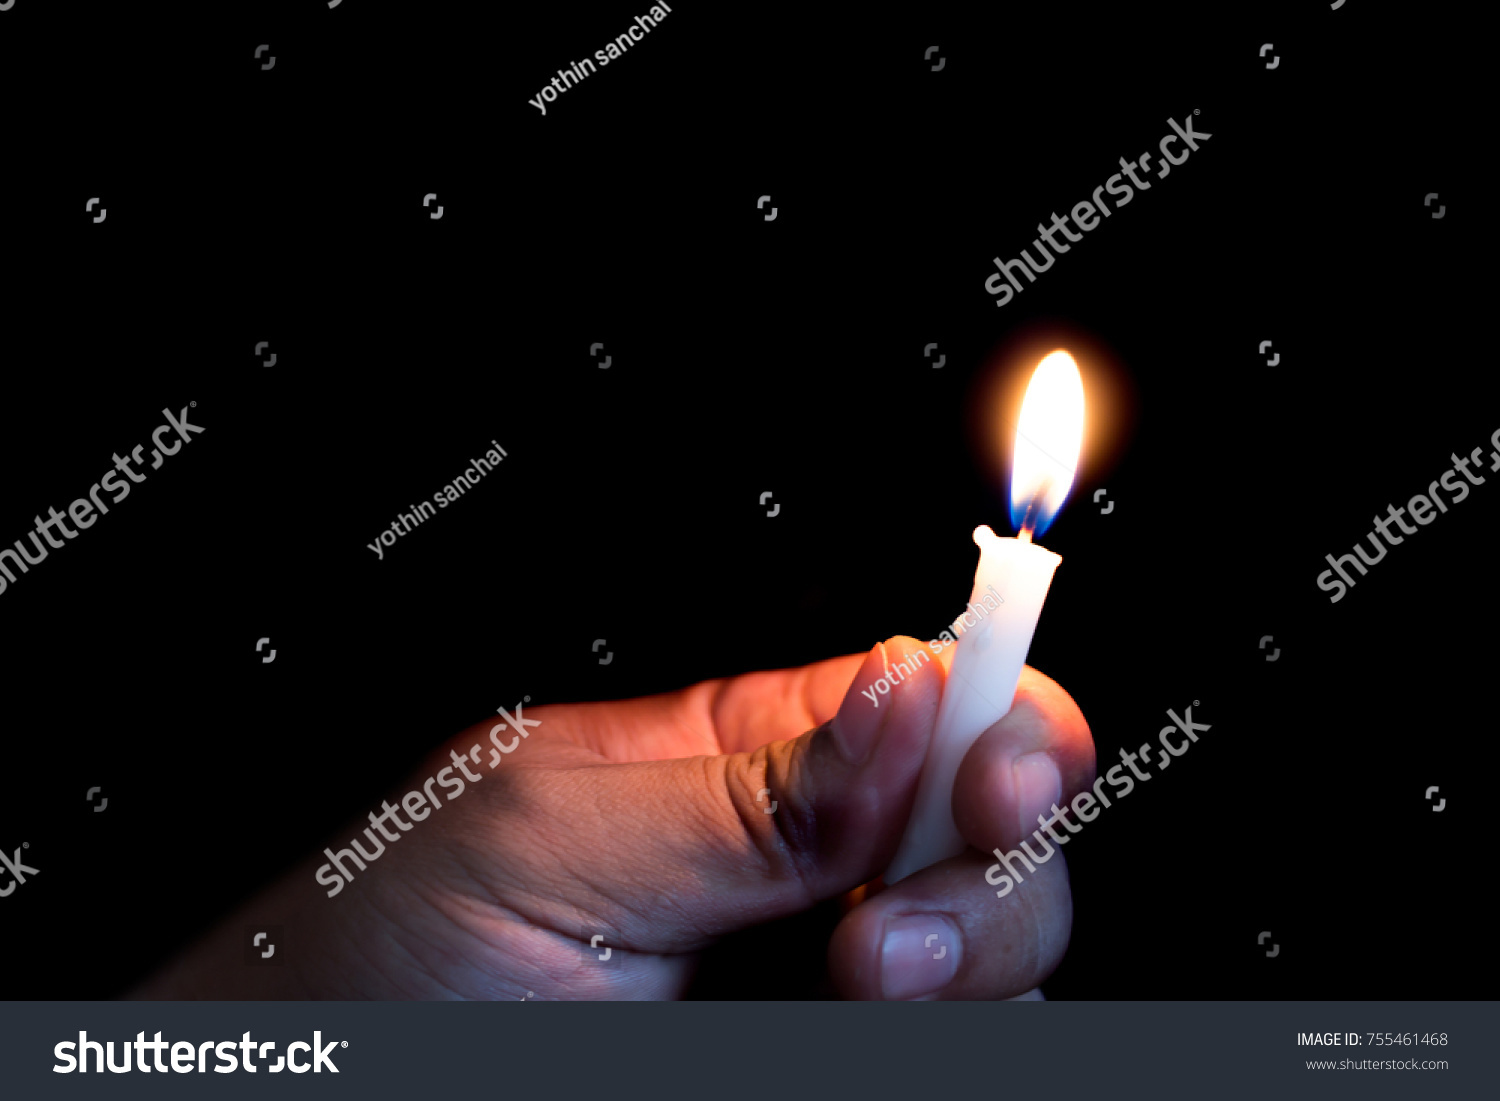 Person Holding Candle Dark Stock Photo 755461468 - Shutterstock for Holding Candle In The Dark  155fiz